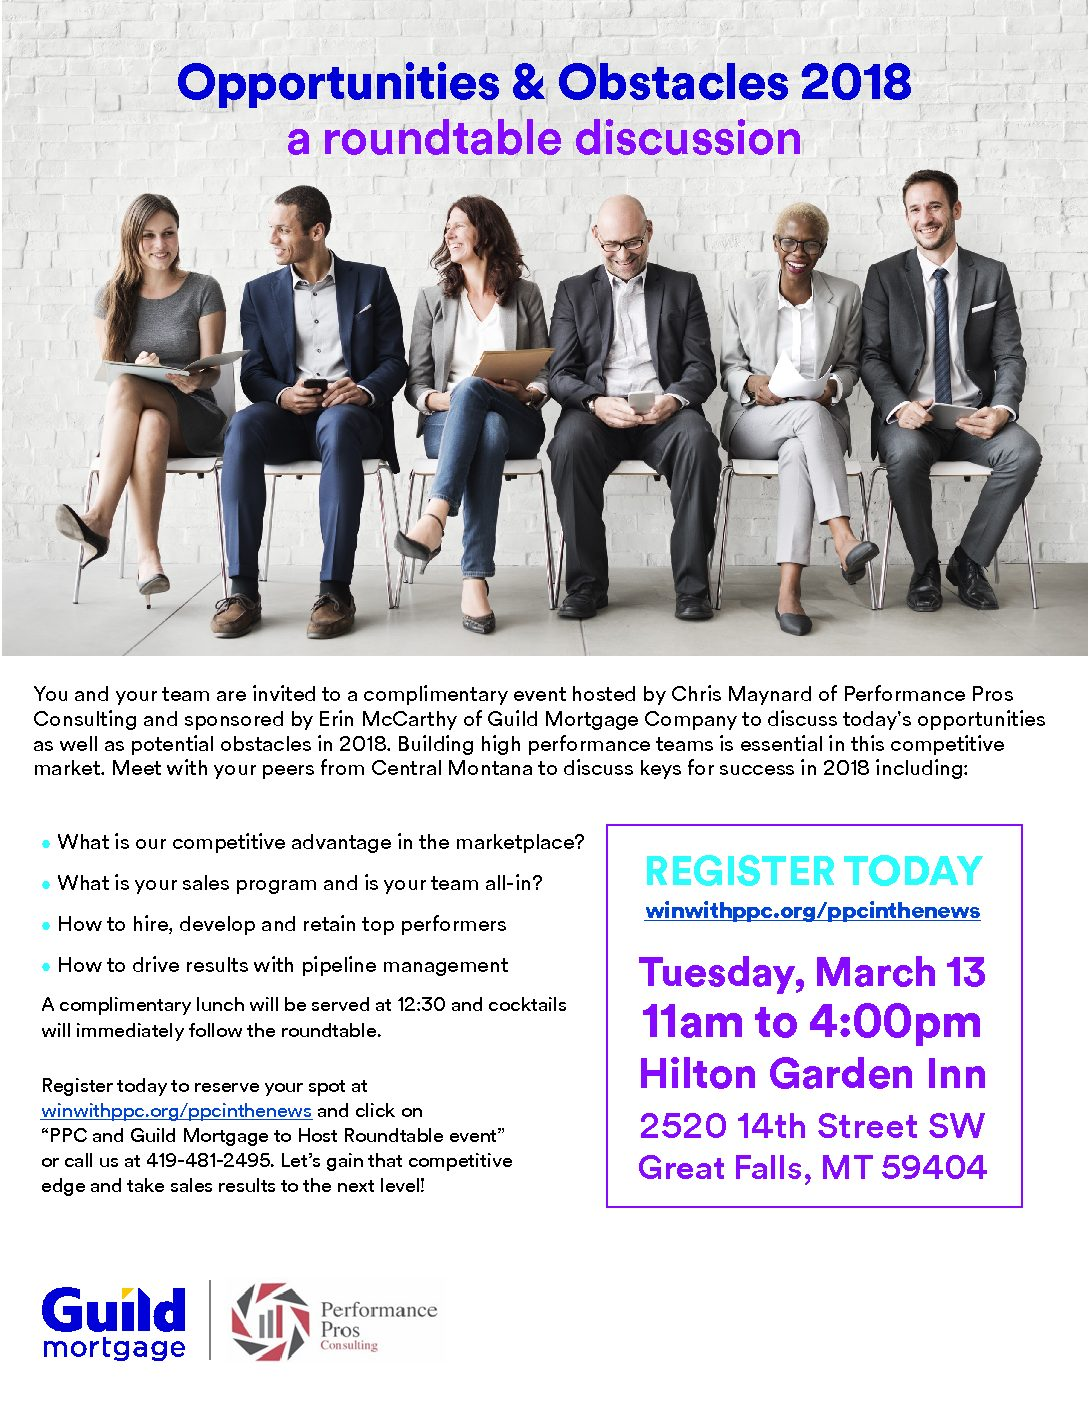 PPC and Guild Mortgage Roundtable event